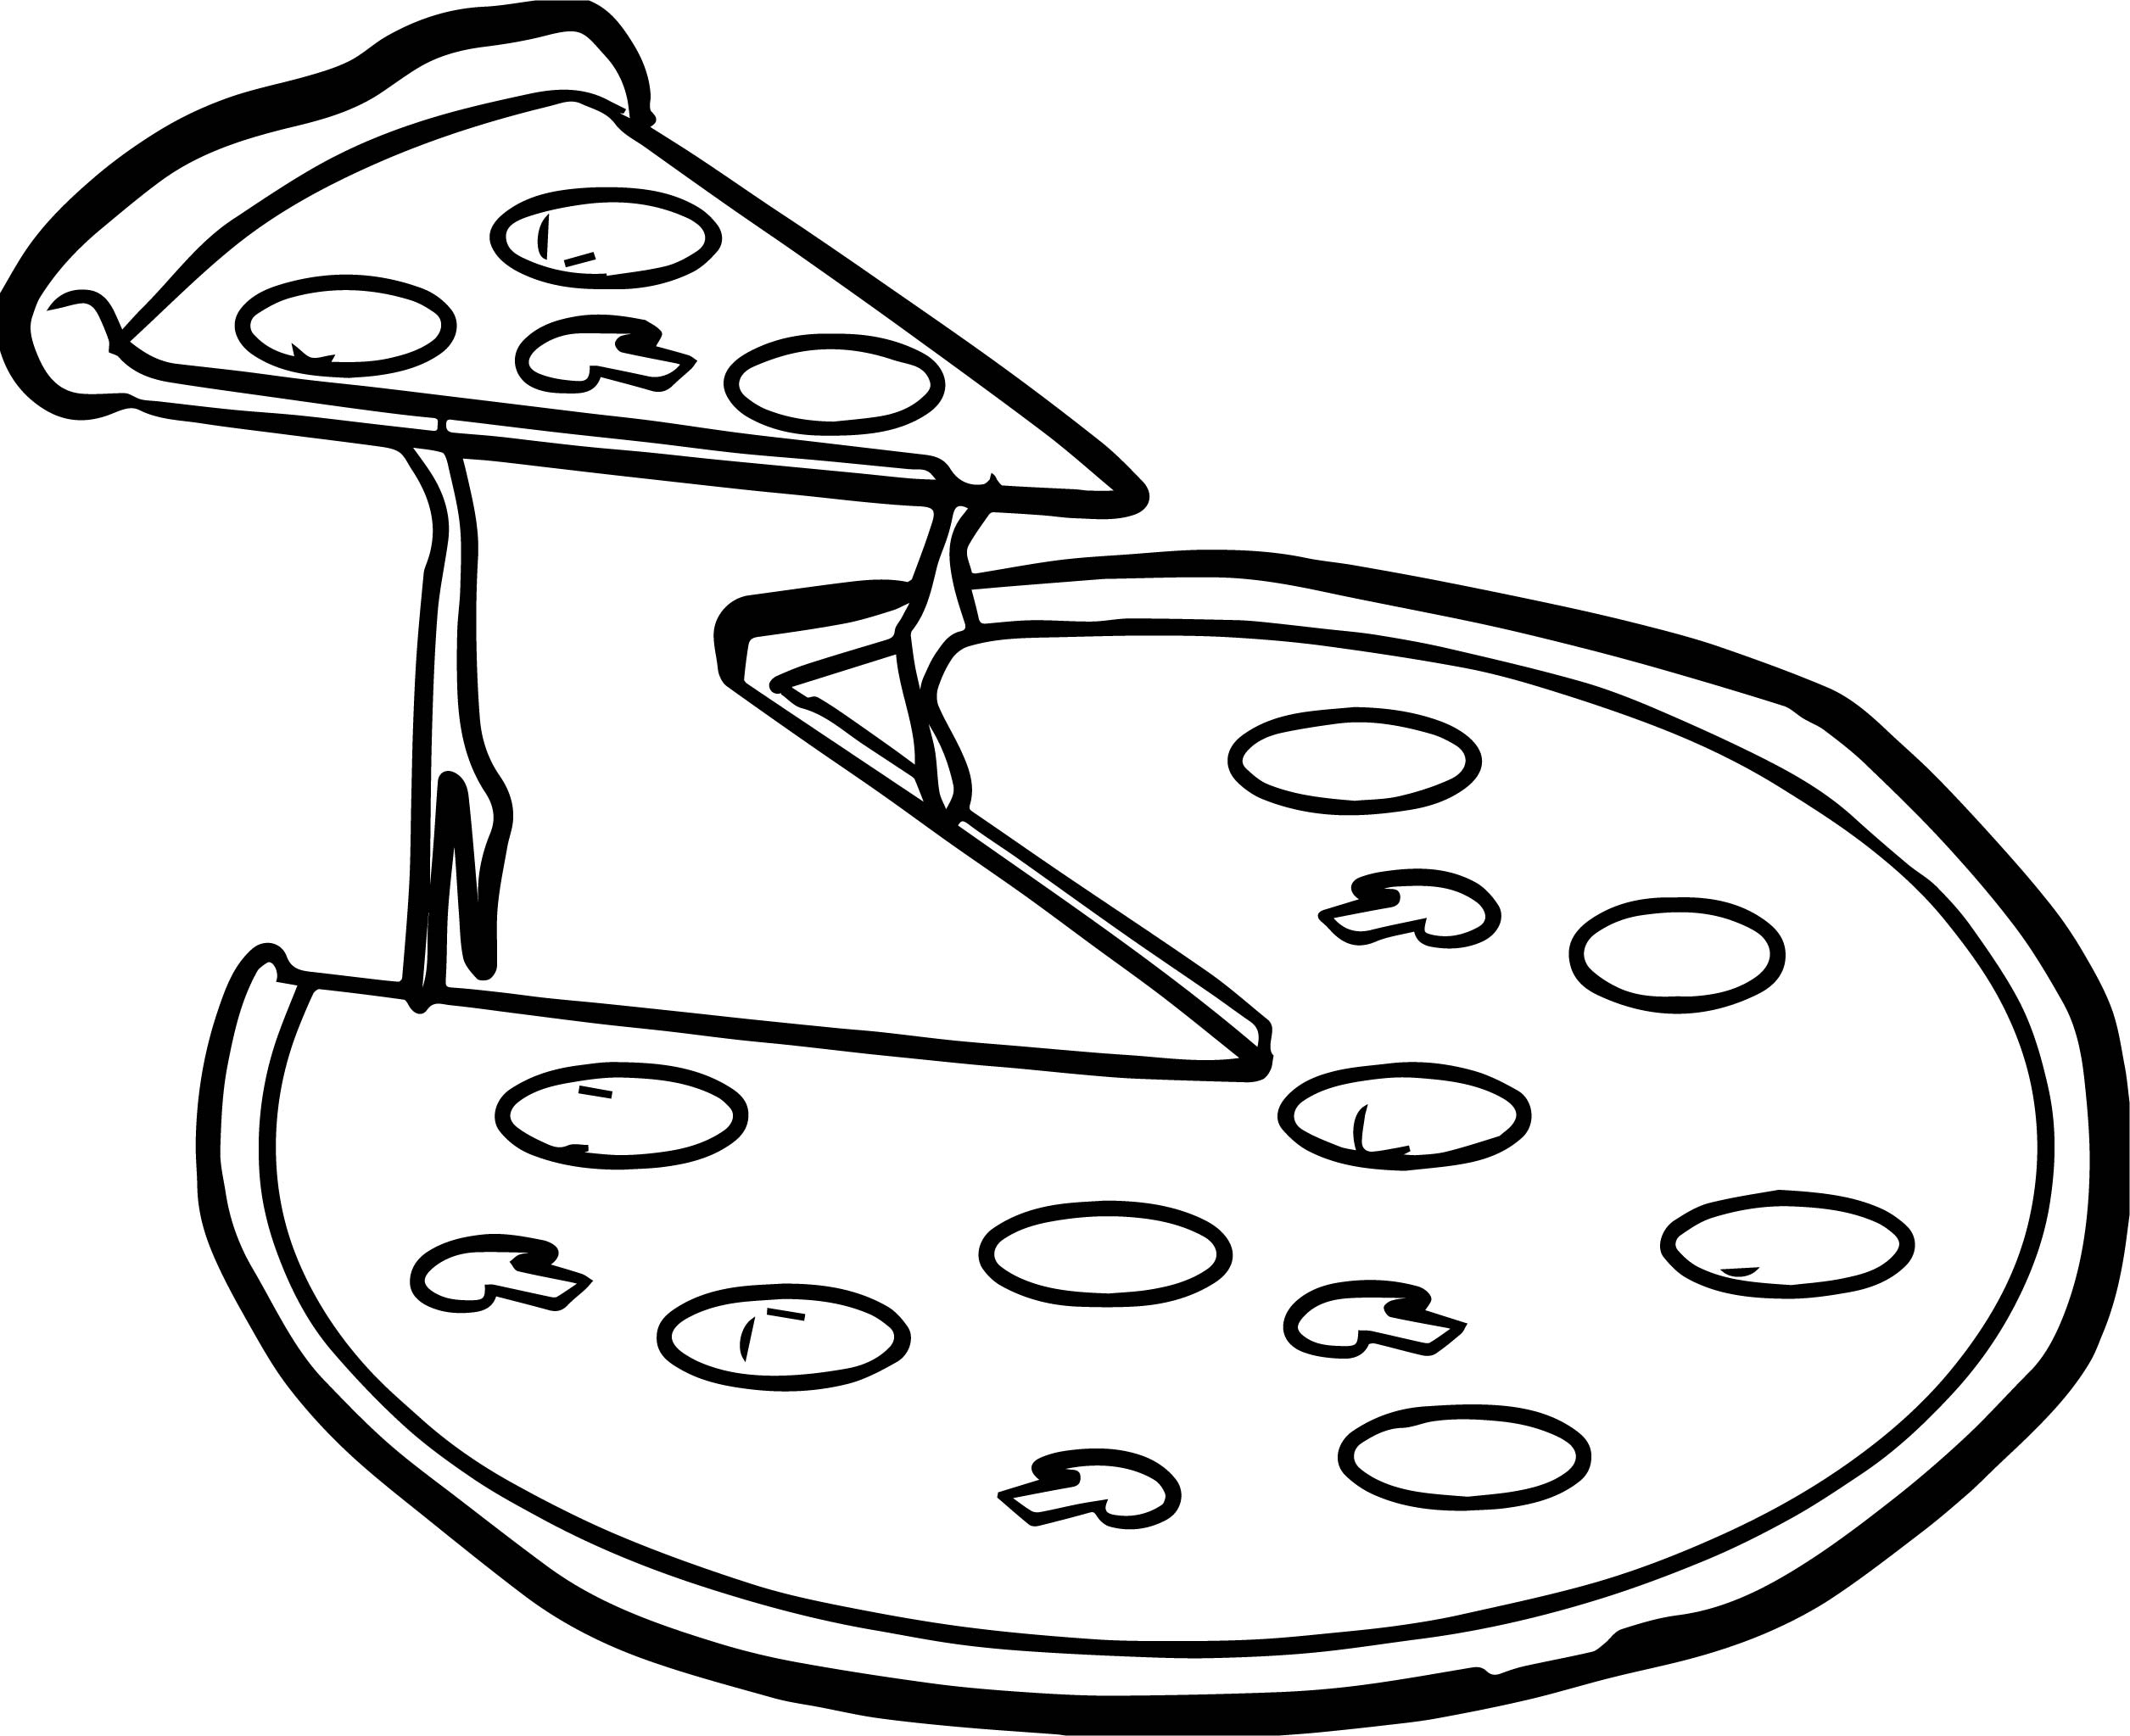 Whole Pizza Coloring Page Wecoloringpage